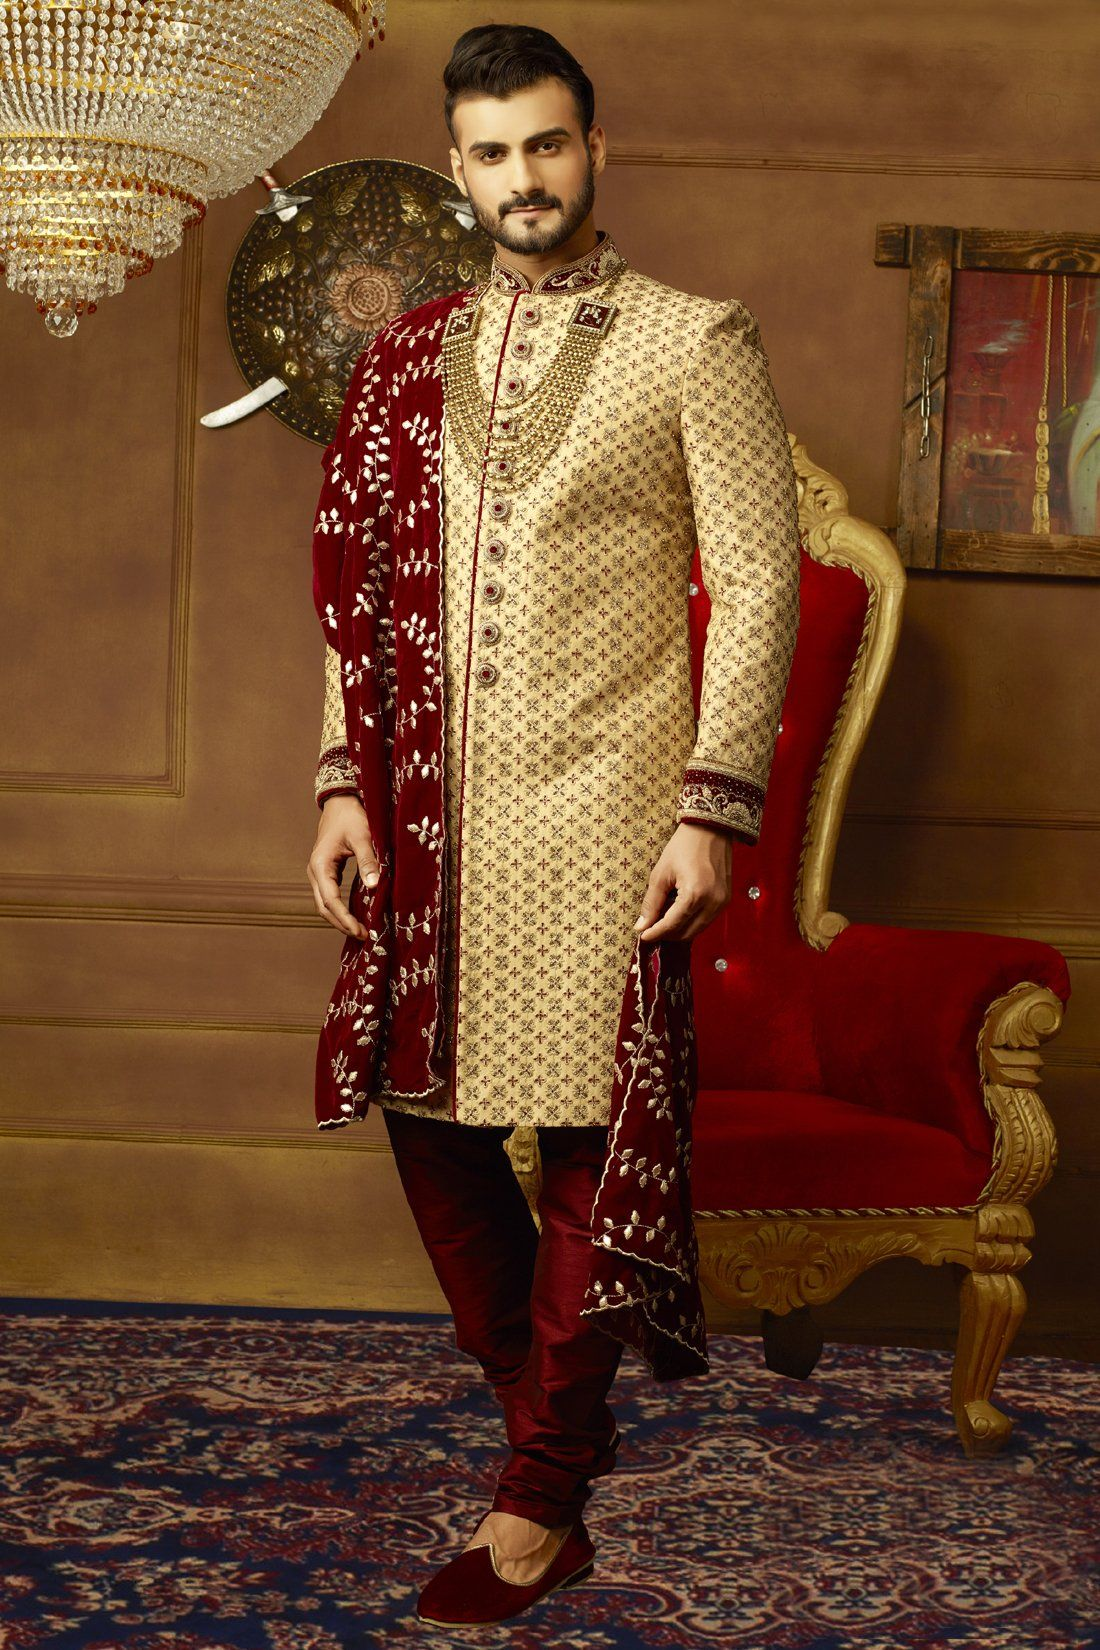 5939a5f30d Gold and Maroon Mens Sherwani Mens Sherwani, Wedding Sherwani, Wedding Men,  Wedding Suits